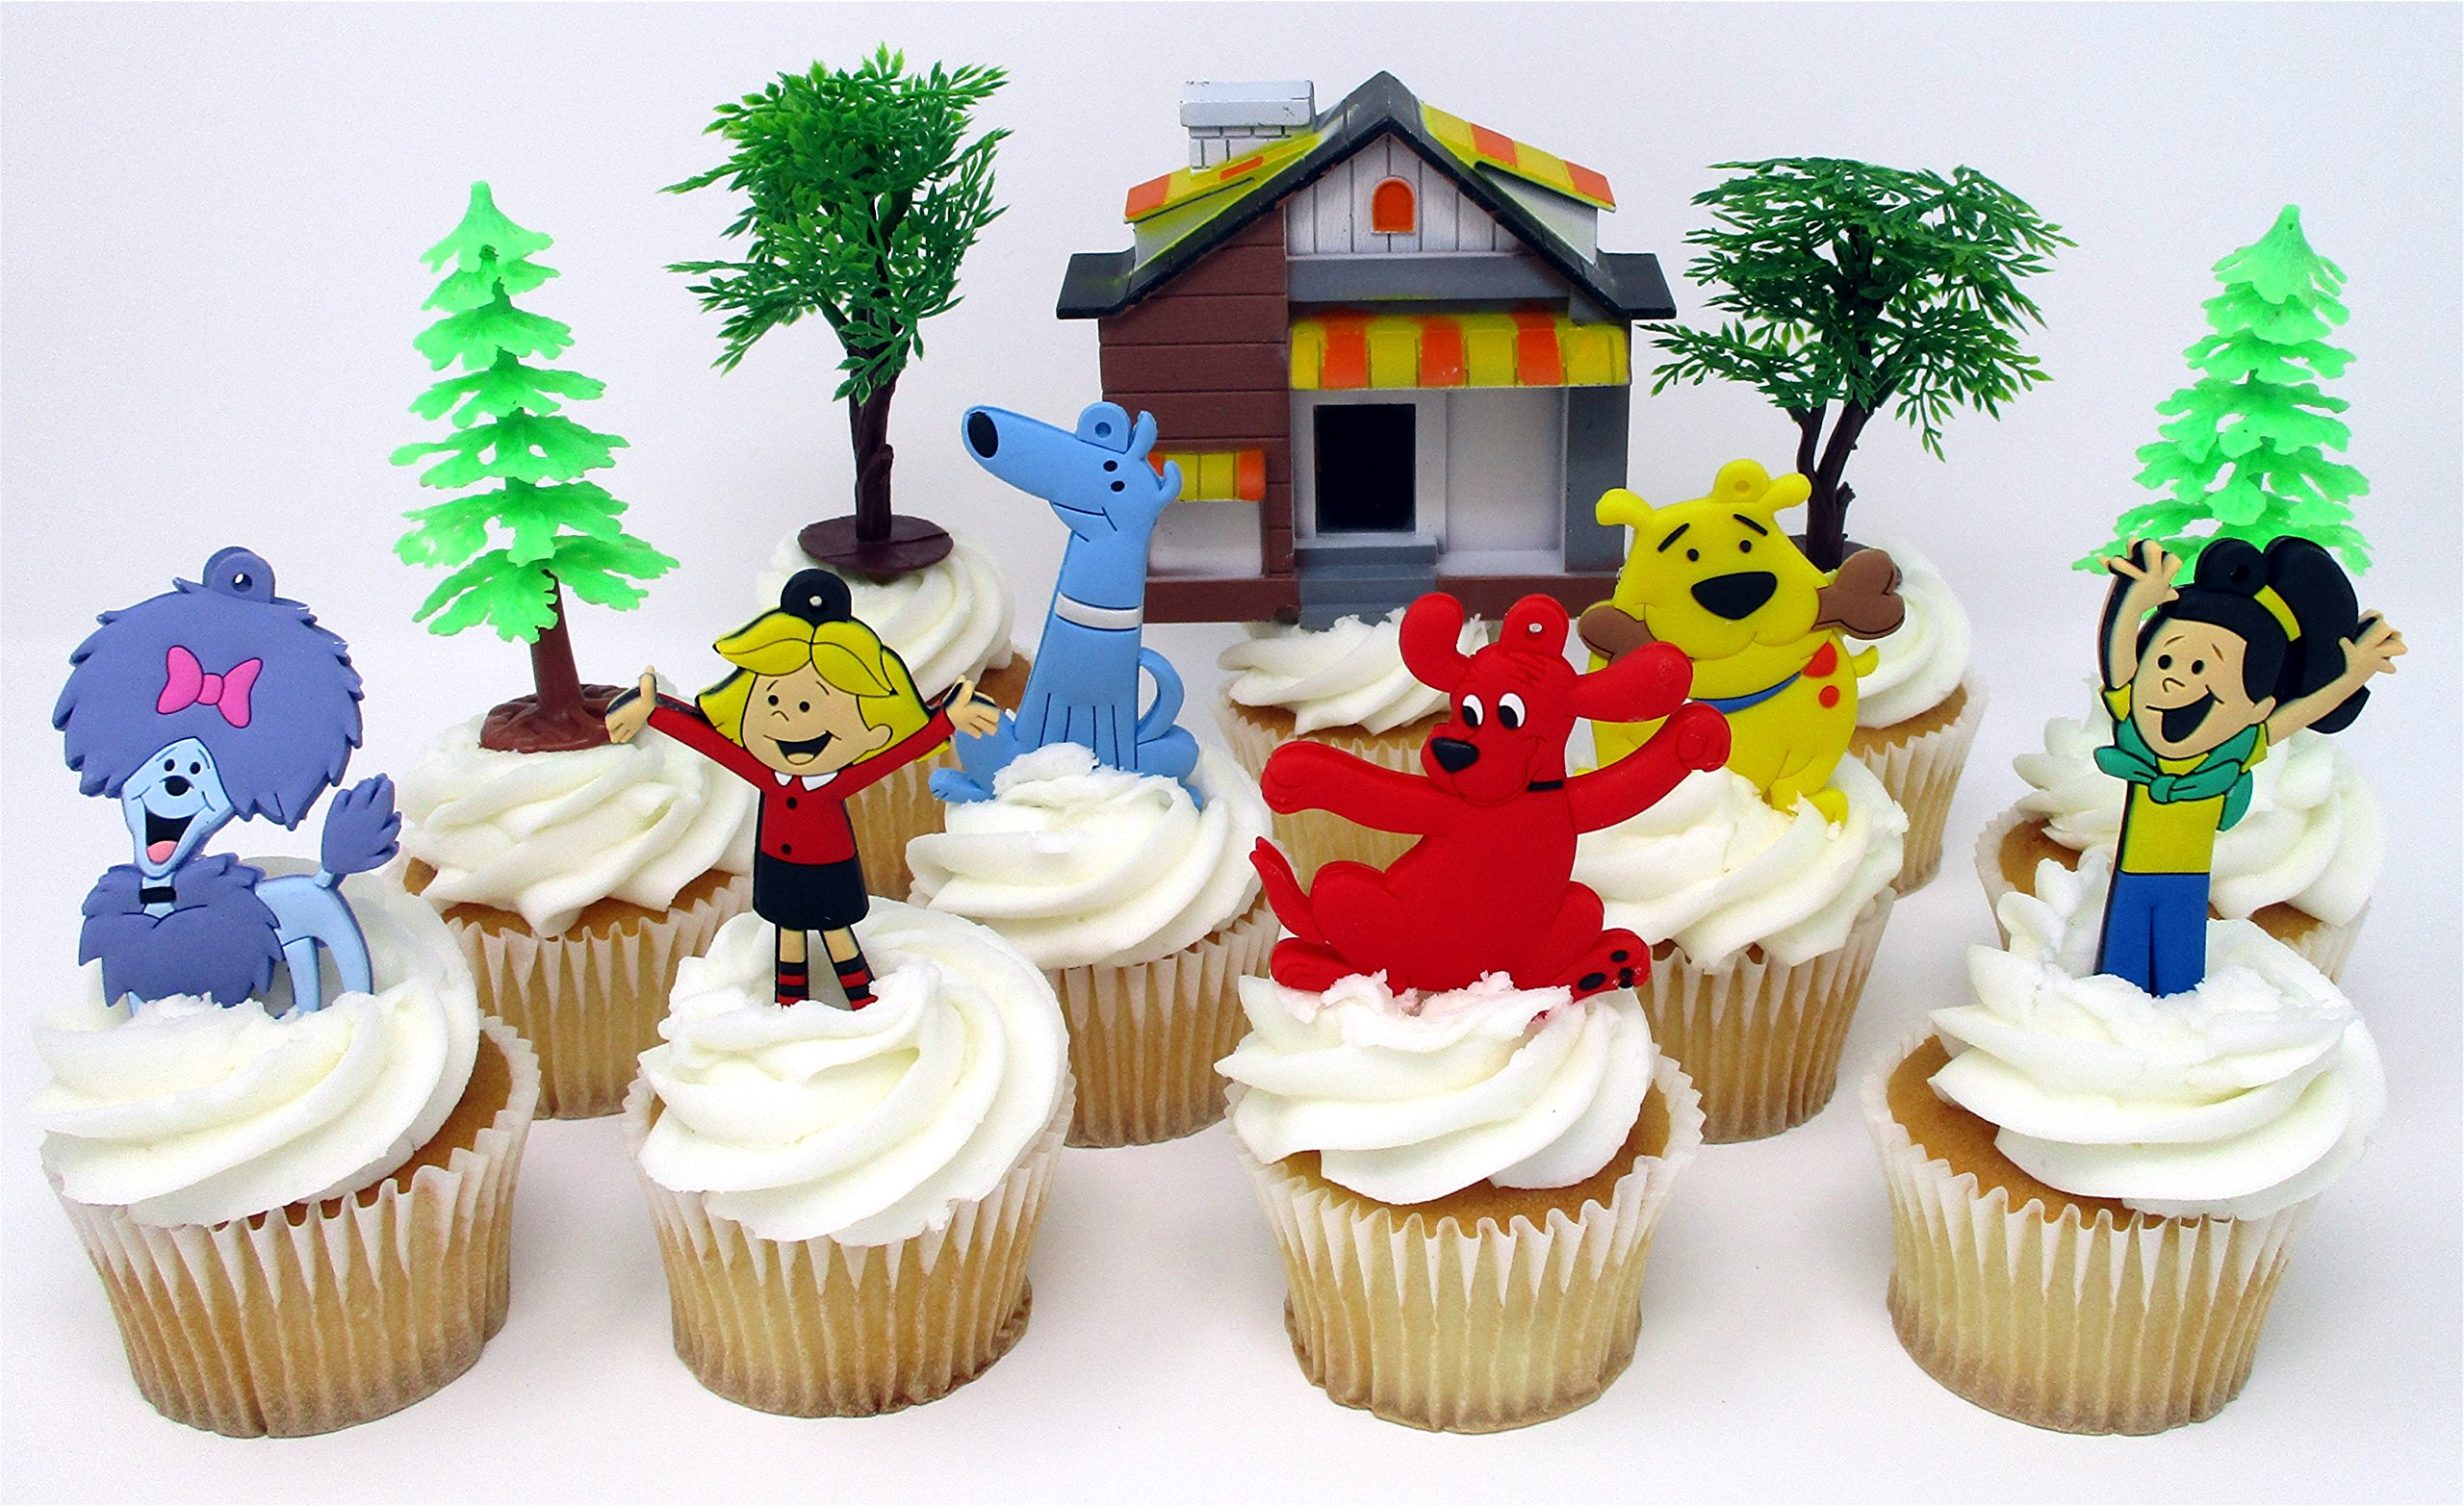 Clifford the Big Red Dog Birthday Cake CUPCAKE Topper Set Featuring Characters from CLIFFORD and Themed Decorative Accessories